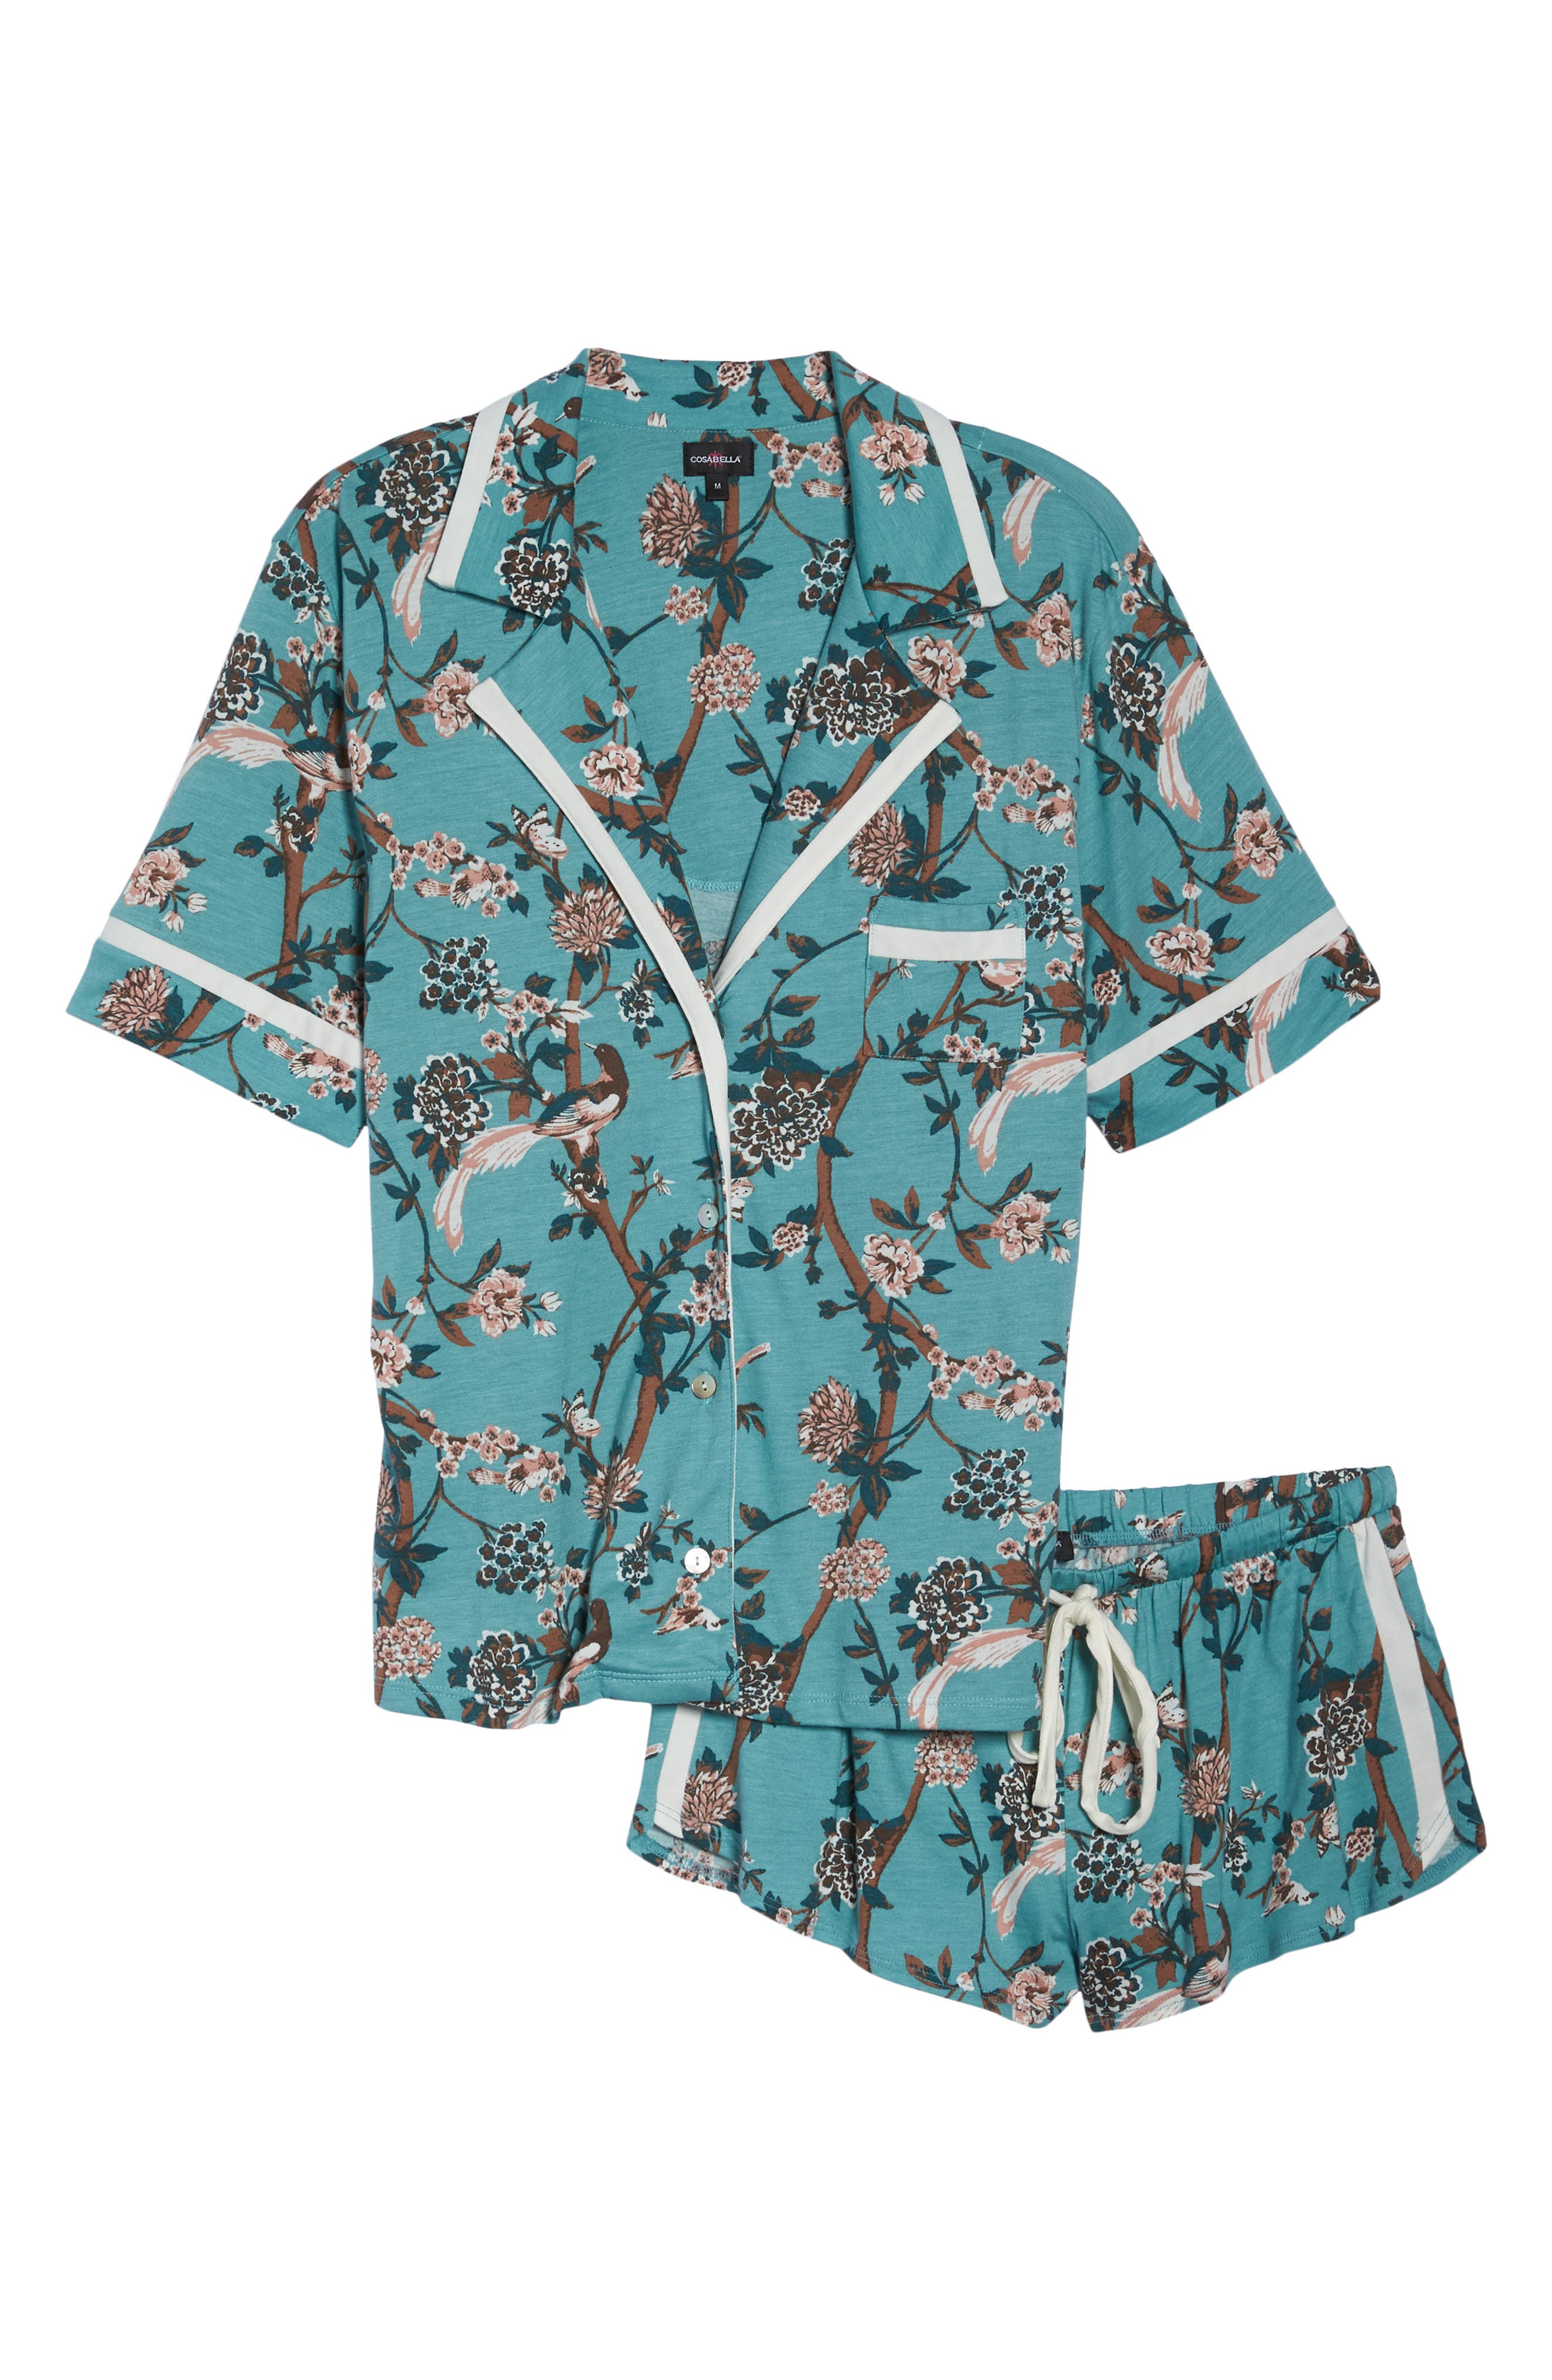 Bella Print Short Pajamas,                             Alternate thumbnail 6, color,                             OPHELIA/ MOON IVORY